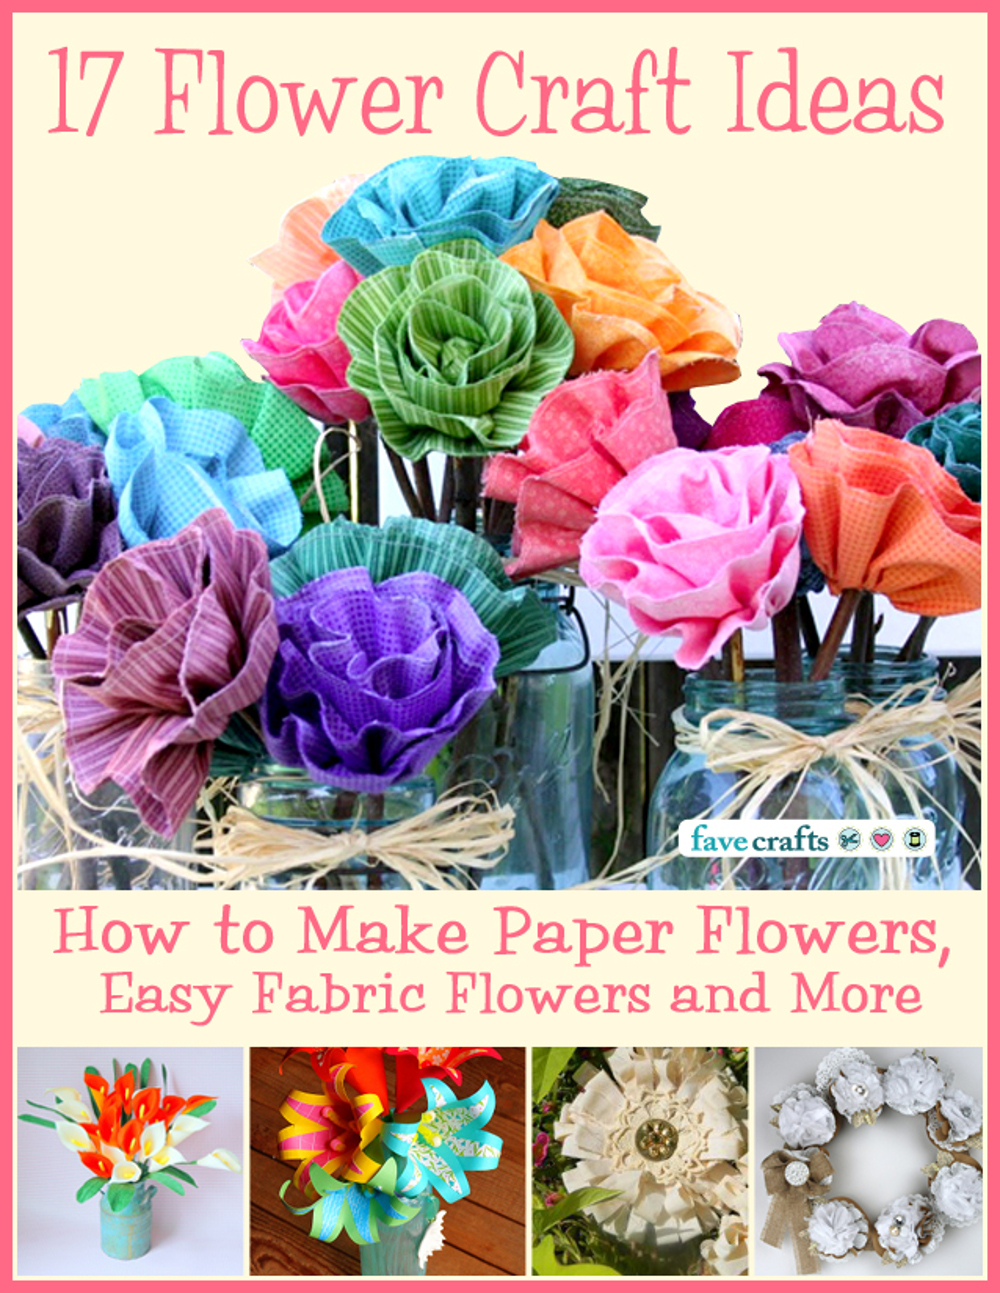 17 flower craft ideas how to make paper flowers easy fabric 17 flower craft ideas how to make paper flowers easy fabric flowers and more free ebook favecrafts mightylinksfo